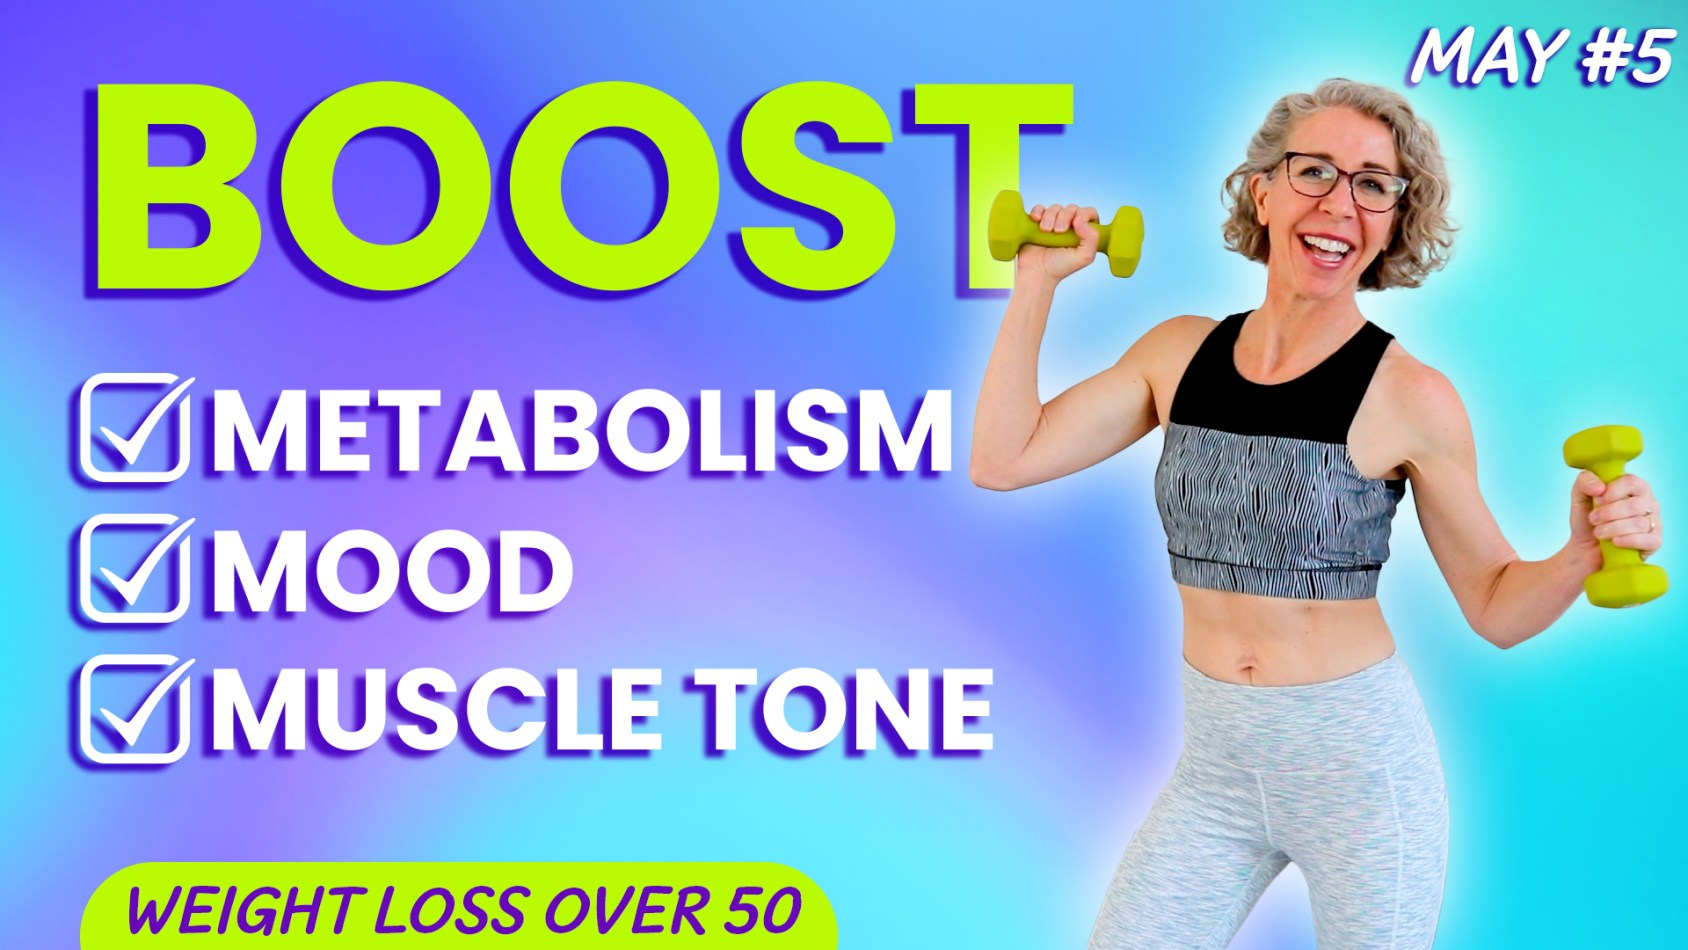 Full Body Fat Loss Routine, CARDIO + WEIGHTS at Home! ???? MAY 5